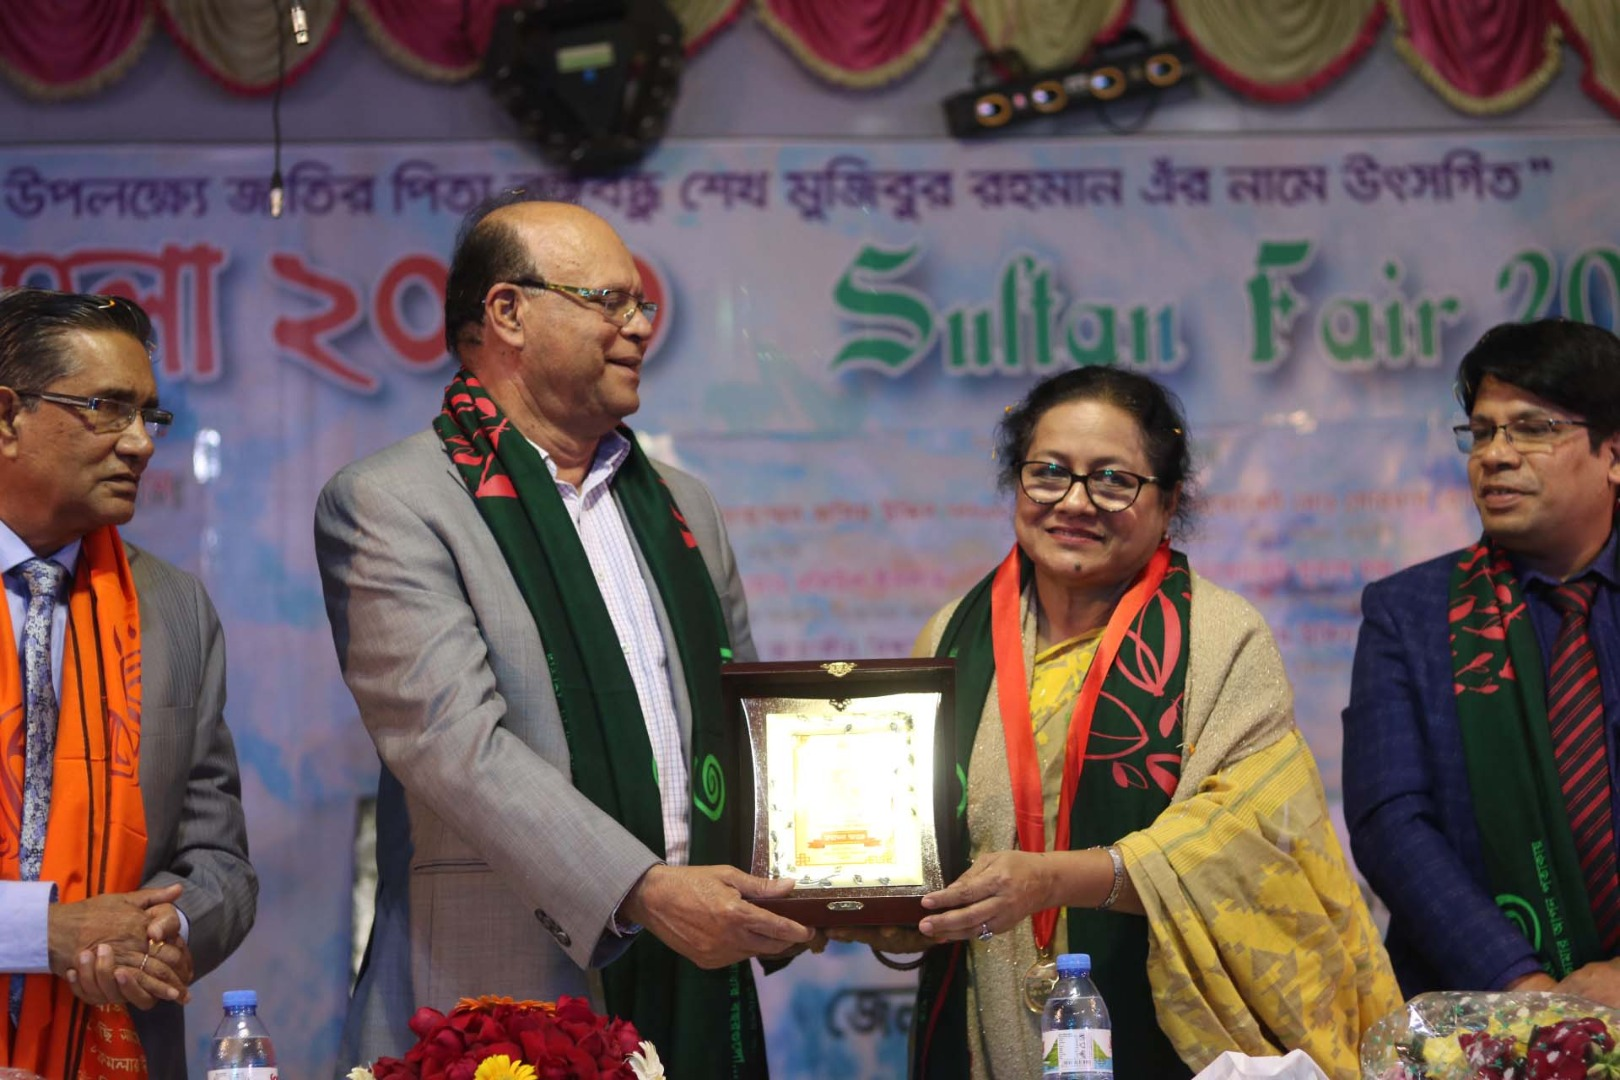 Bangladesh Shilpakala Academy was awarded the 'Sultan Gold Medal 2020' Professor D. Farida Zaman